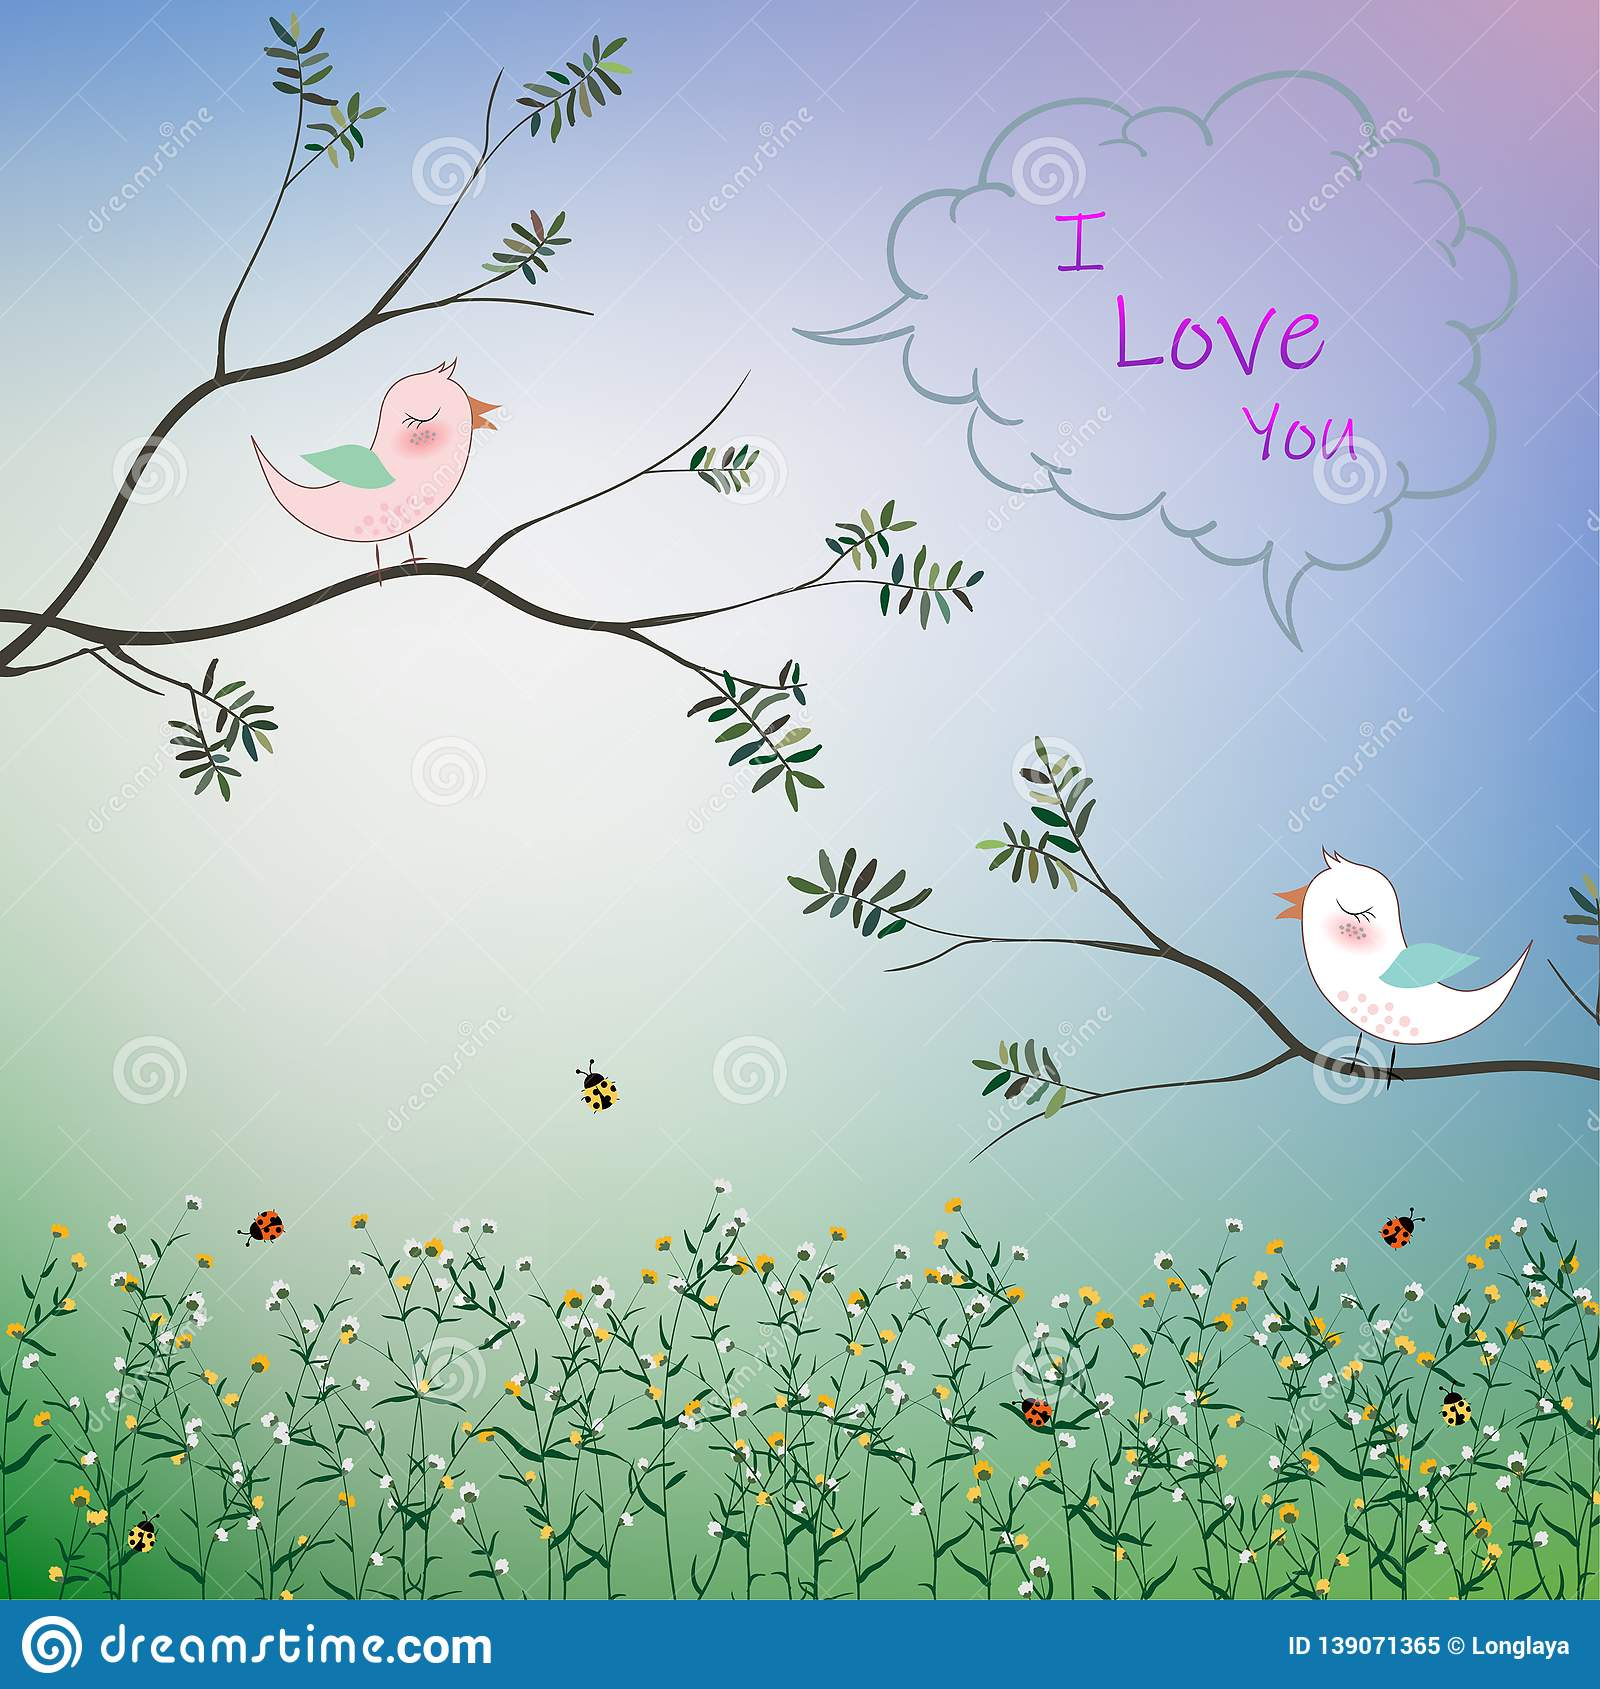 Cute bird couple fall in love in the garden for romantic Valentine`s day,greeting card,kid product,t-shirt,print or textile